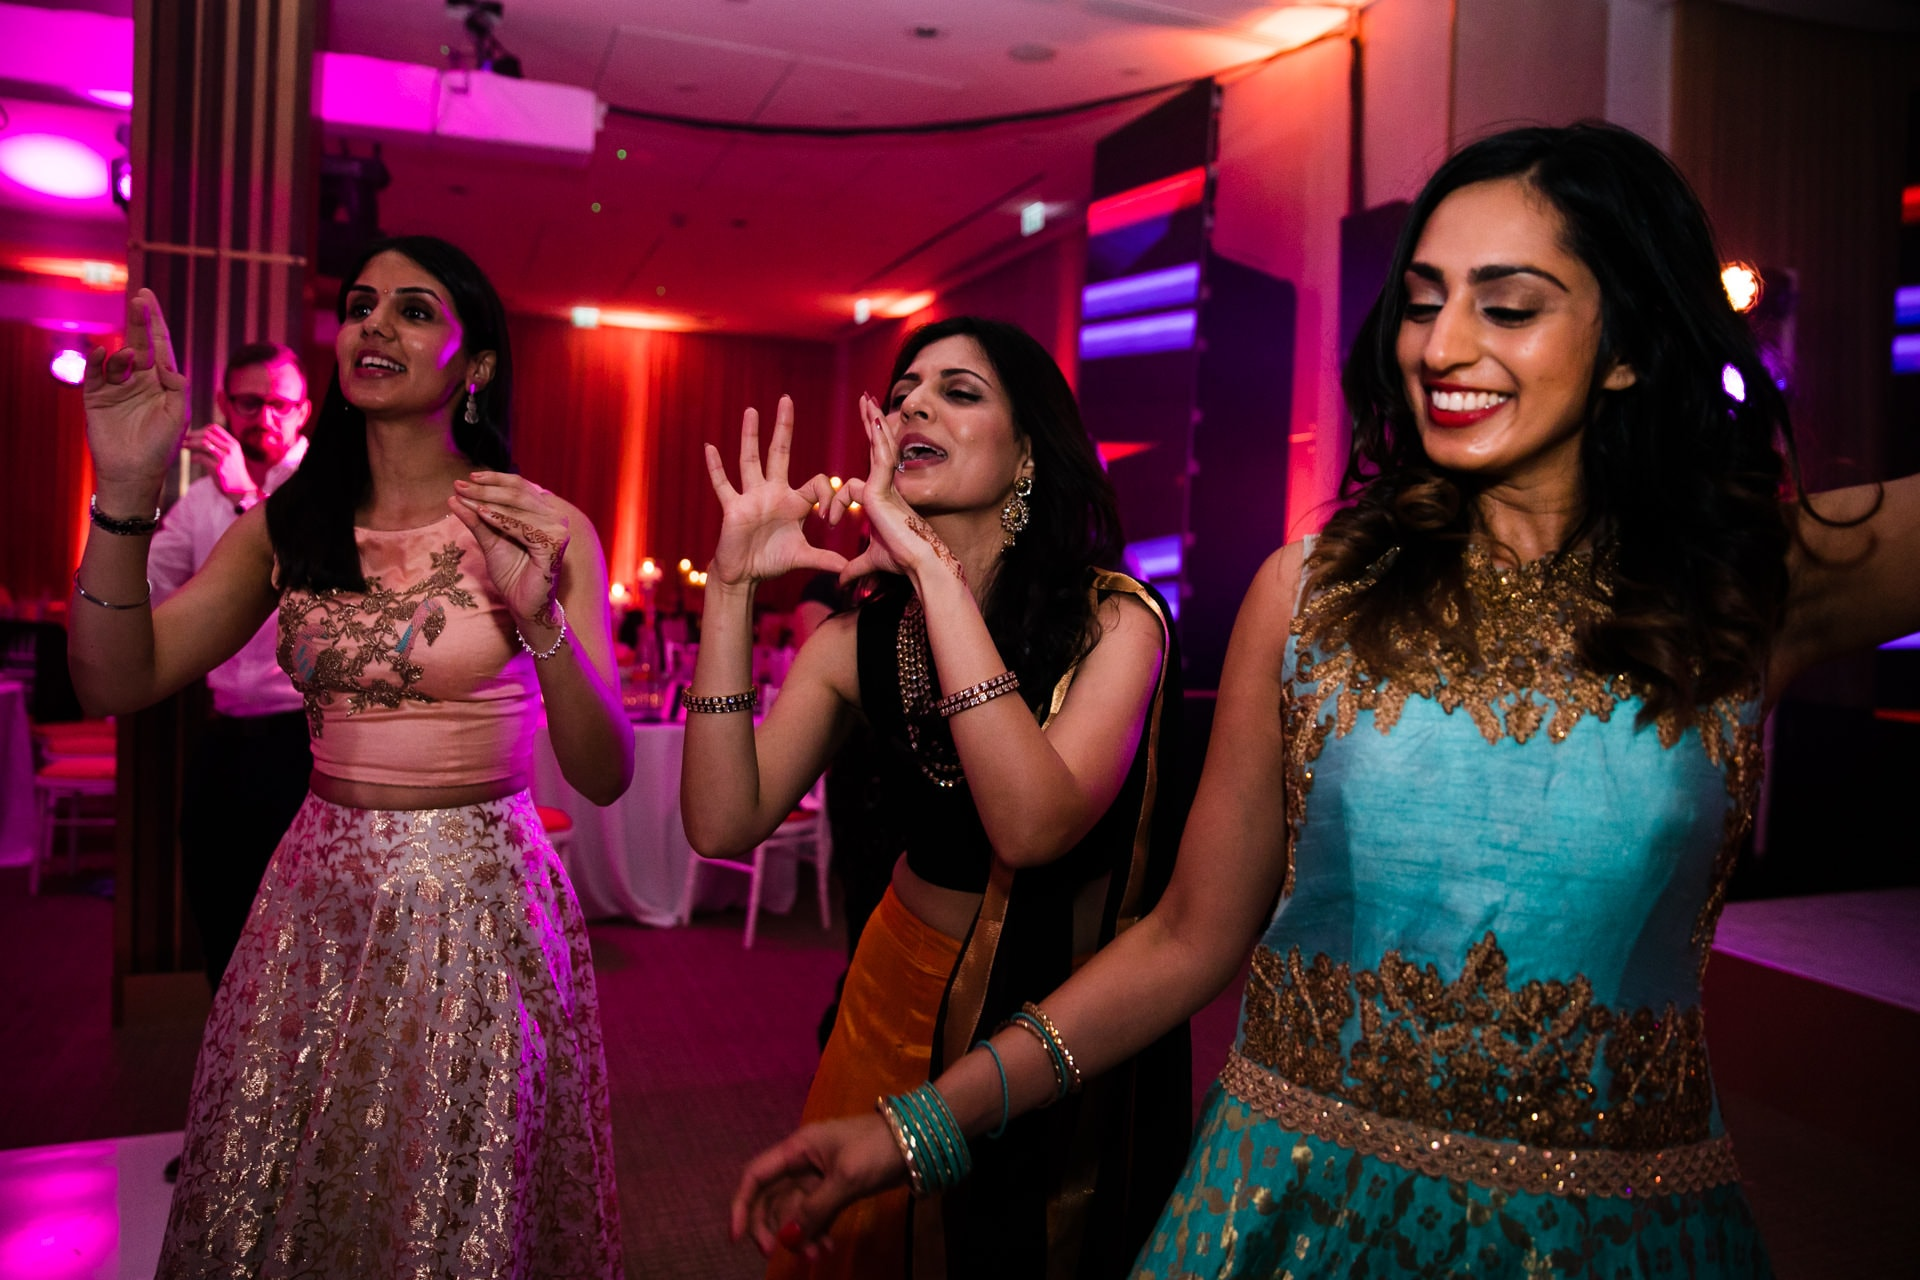 Wedding reception Party at The Grove, hosted by DJ Jas Johal of Kudos Music